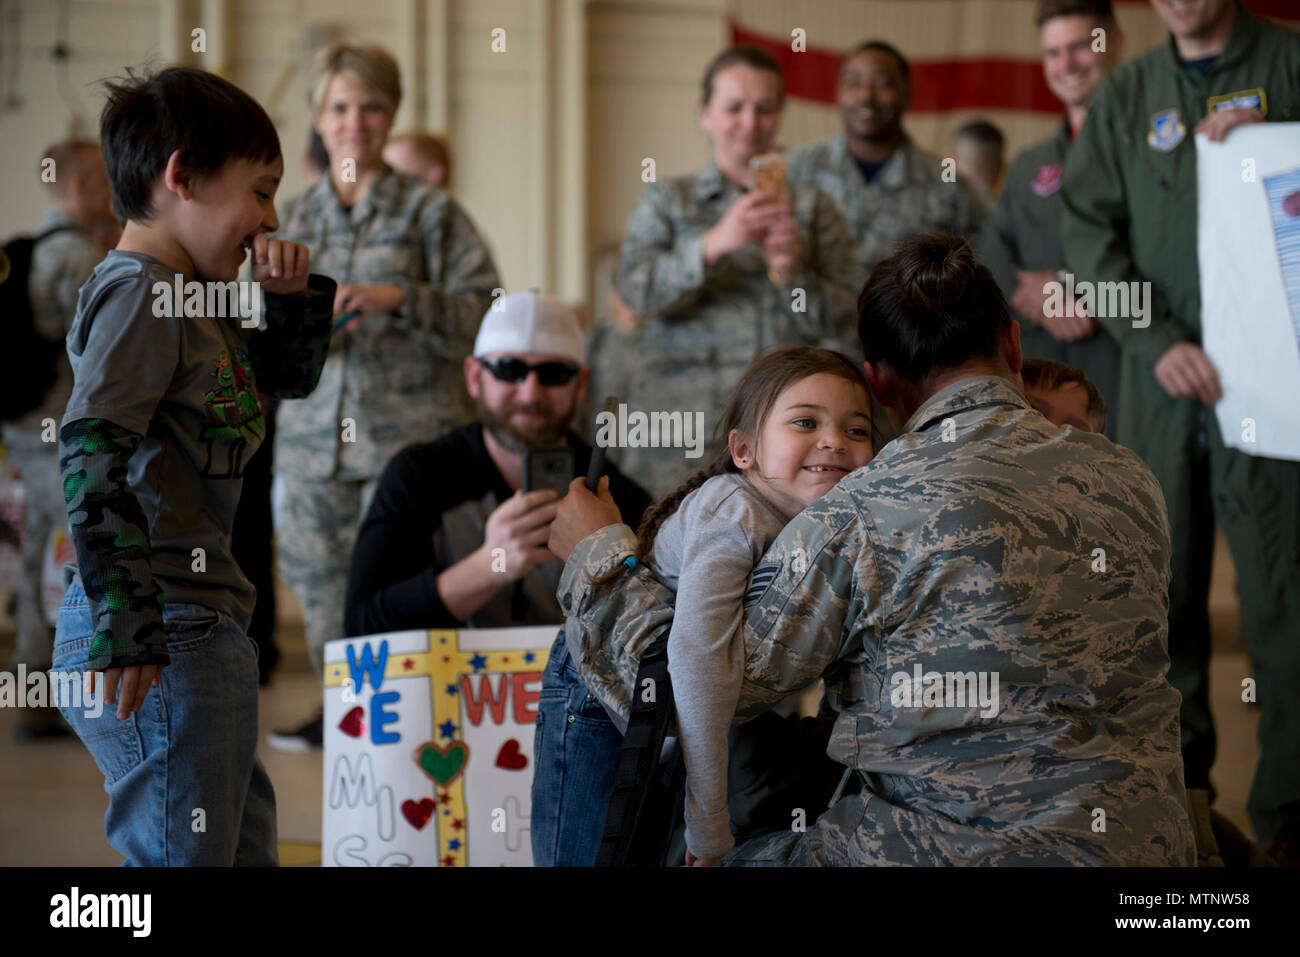 Friends and Families reunite at Hangar 25 on Joint Base Elmendorf-Richardson, Alaska April 21 as the 525th Fighter Squadron to return from a 7-month deployment. For many families, this was their first time being separated from their loved ones for an extended period of time. - Stock Image